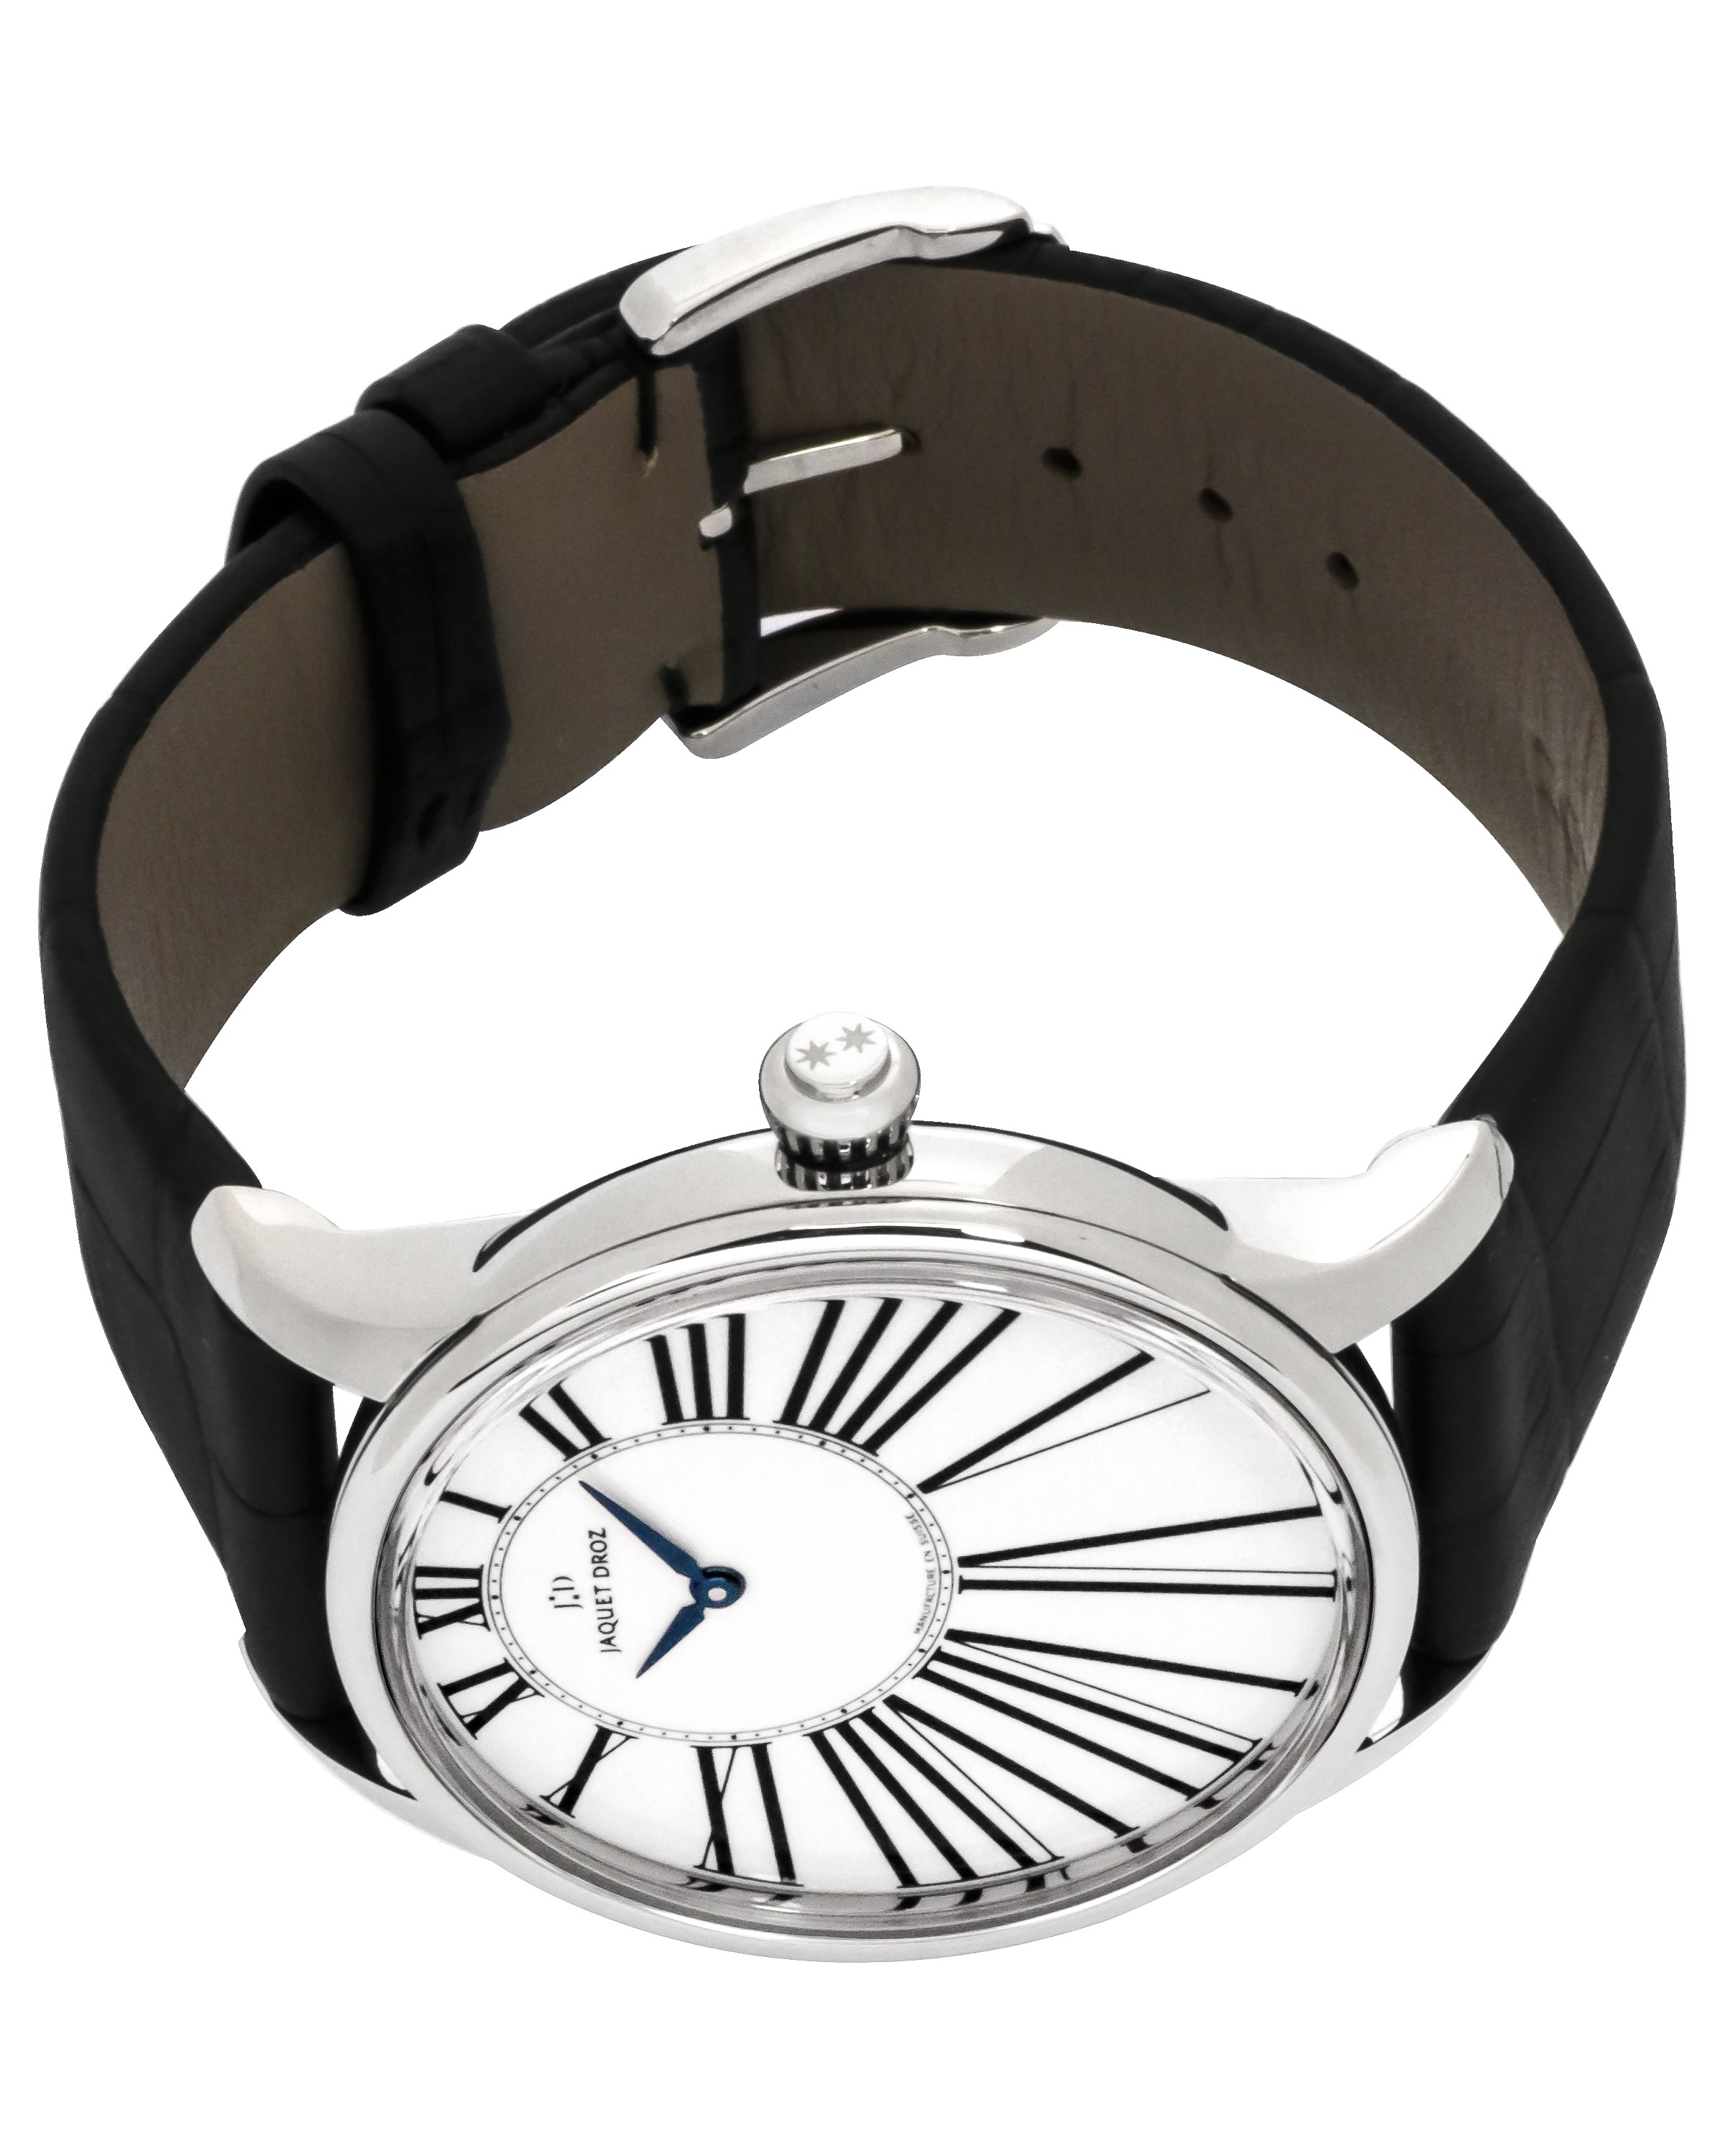 Jaquet Droz Petite Heure Minute Stainless Steel Automatic Men's Watch  J005020202